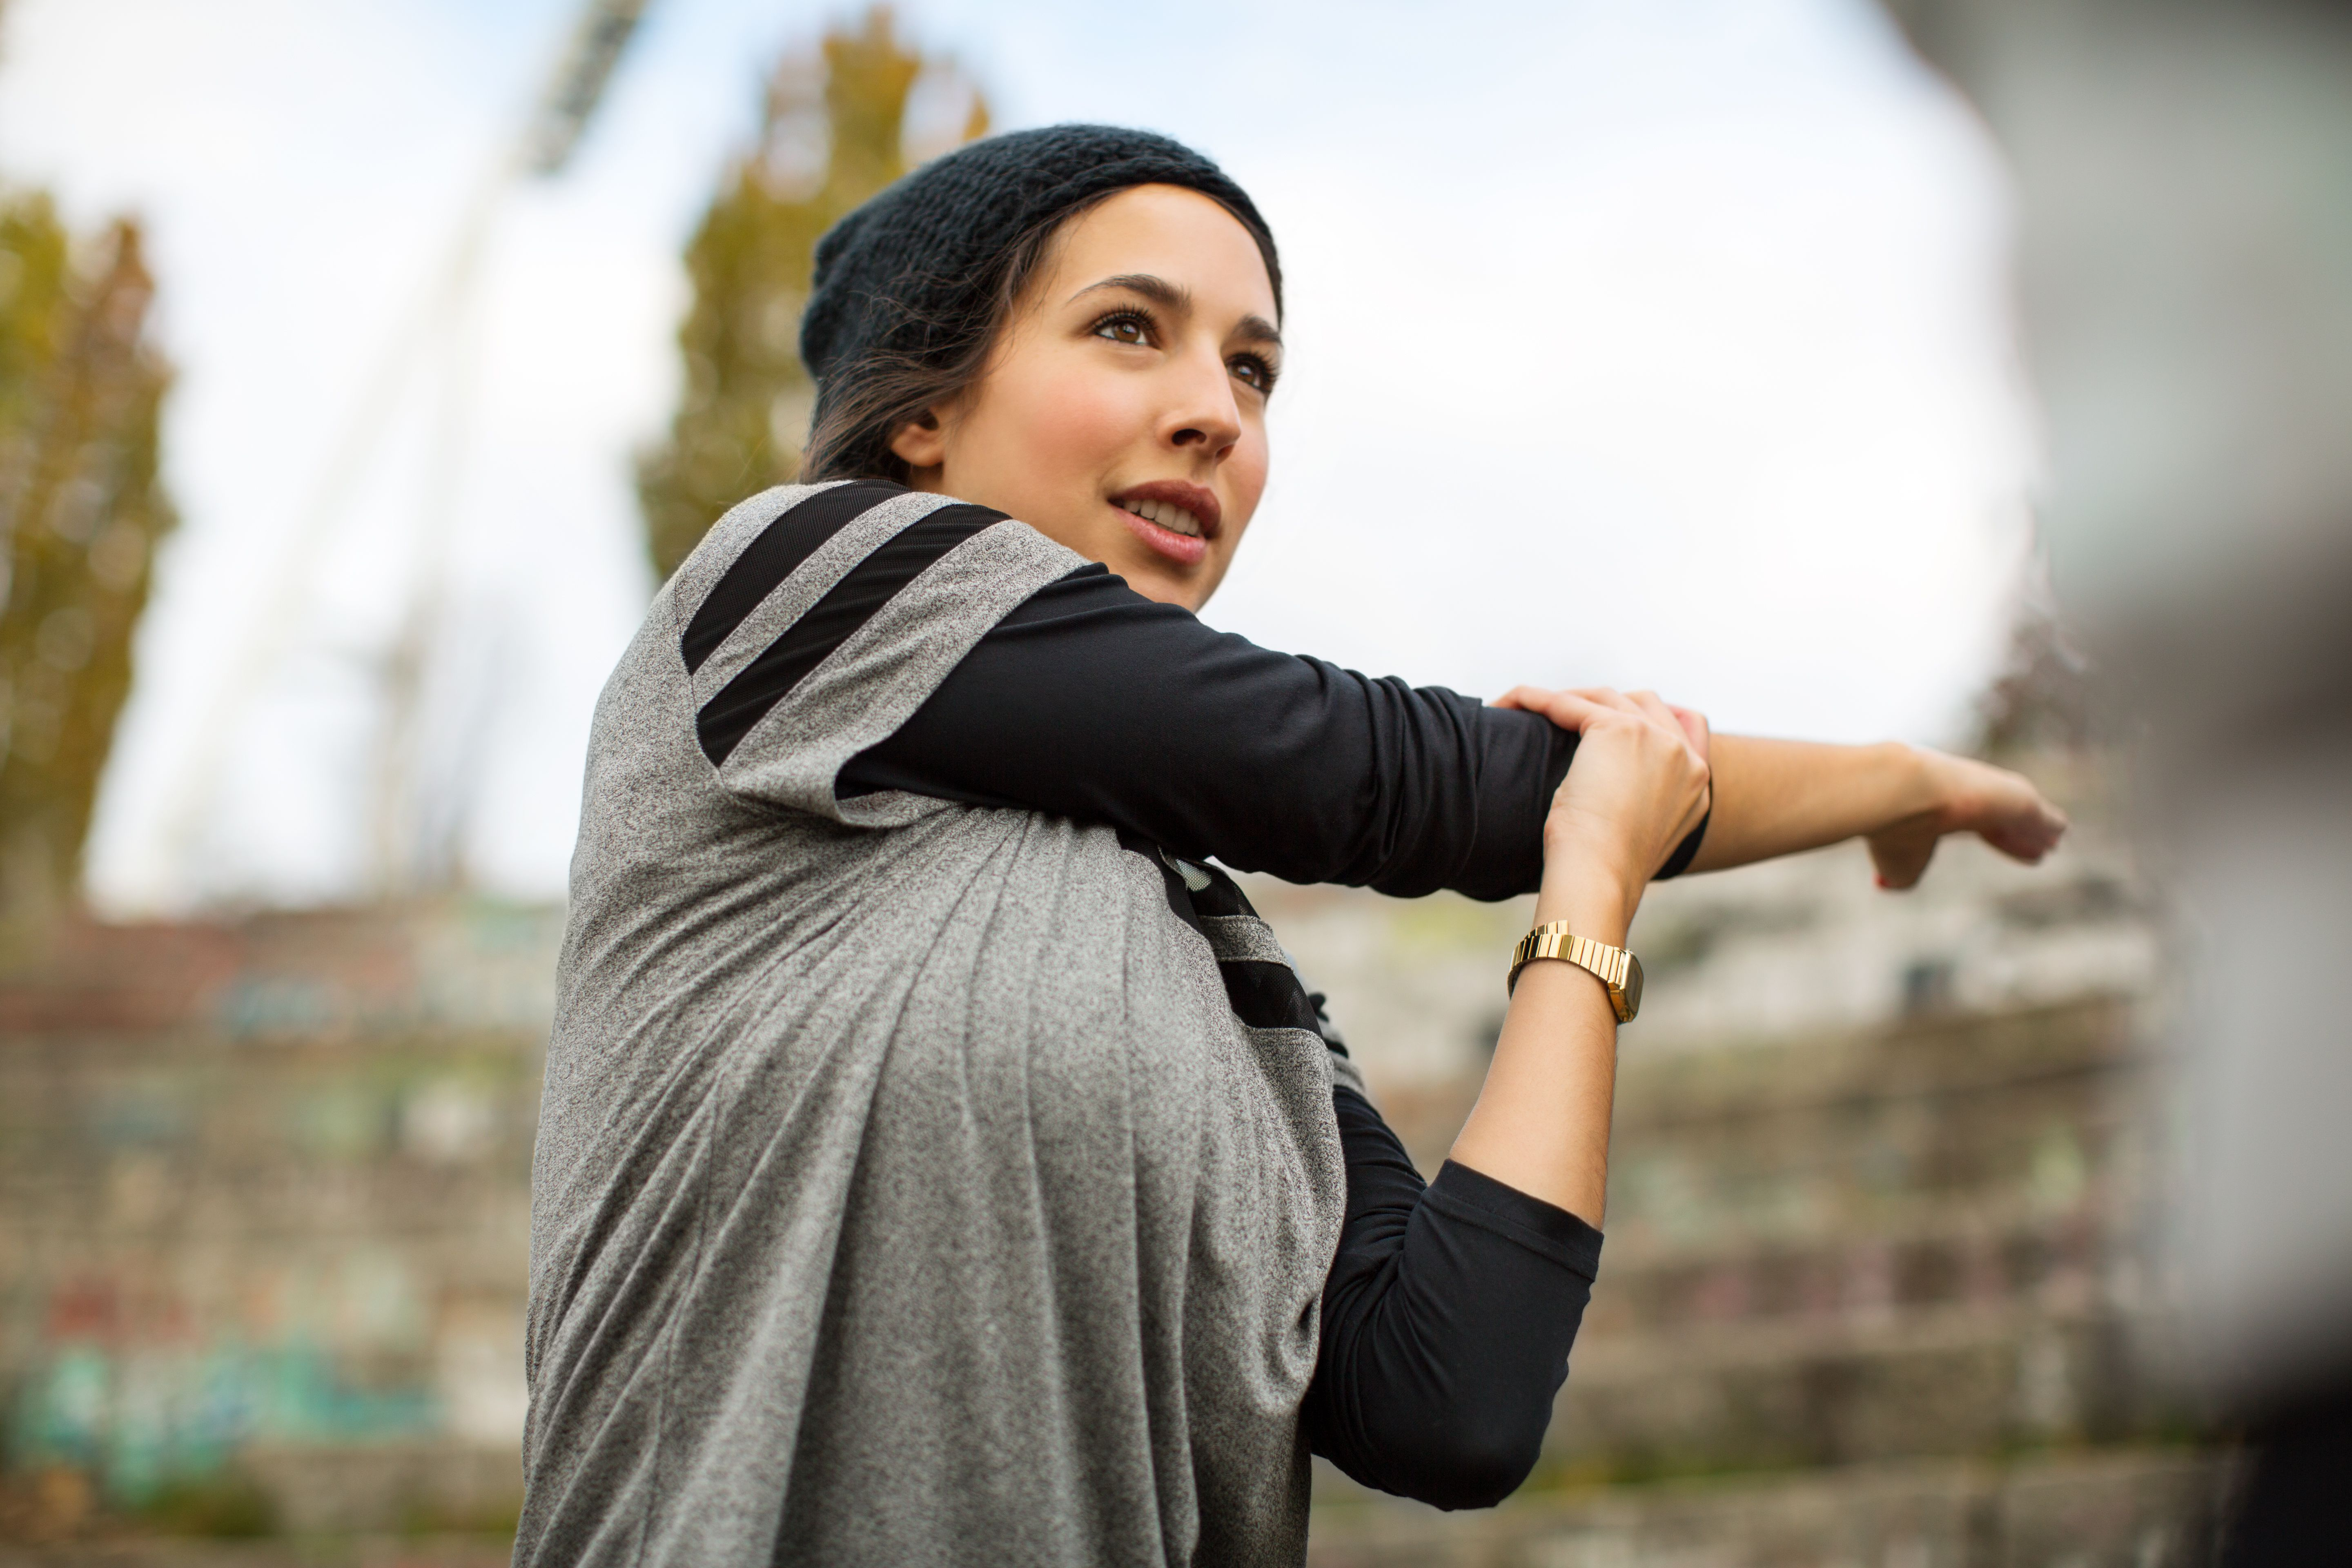 How to Do Arm Exercises After Breast Surgery